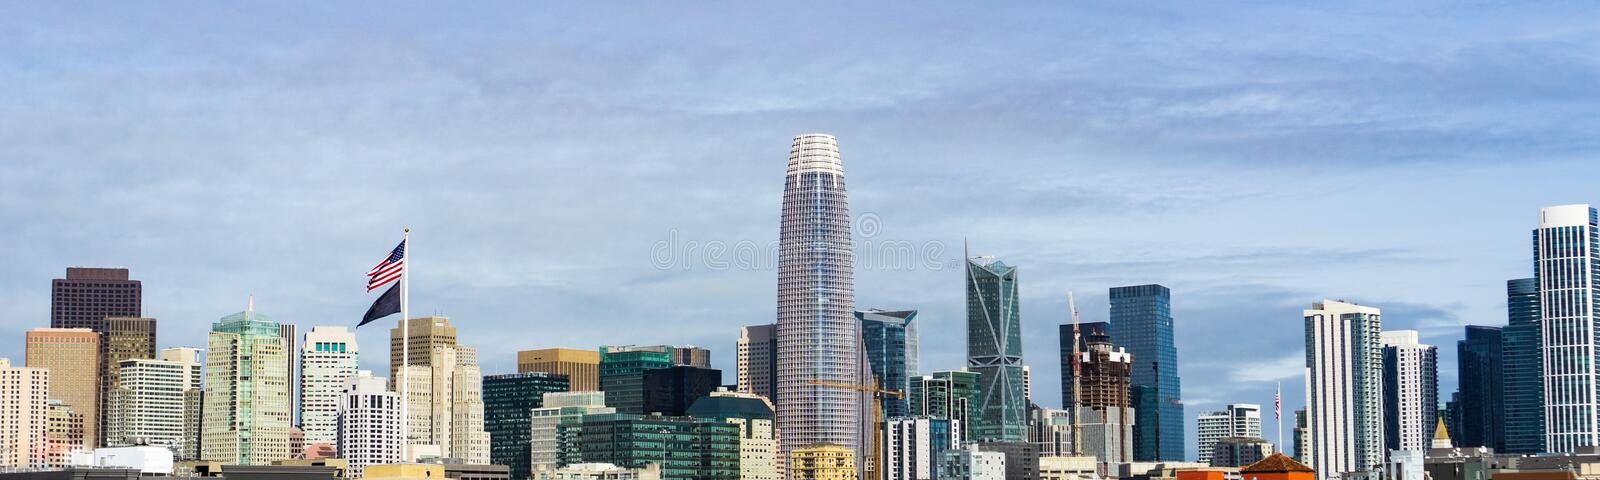 San Francisco`s downtown skyline with old buildings on the left side, versus new ones on the right side stock photography